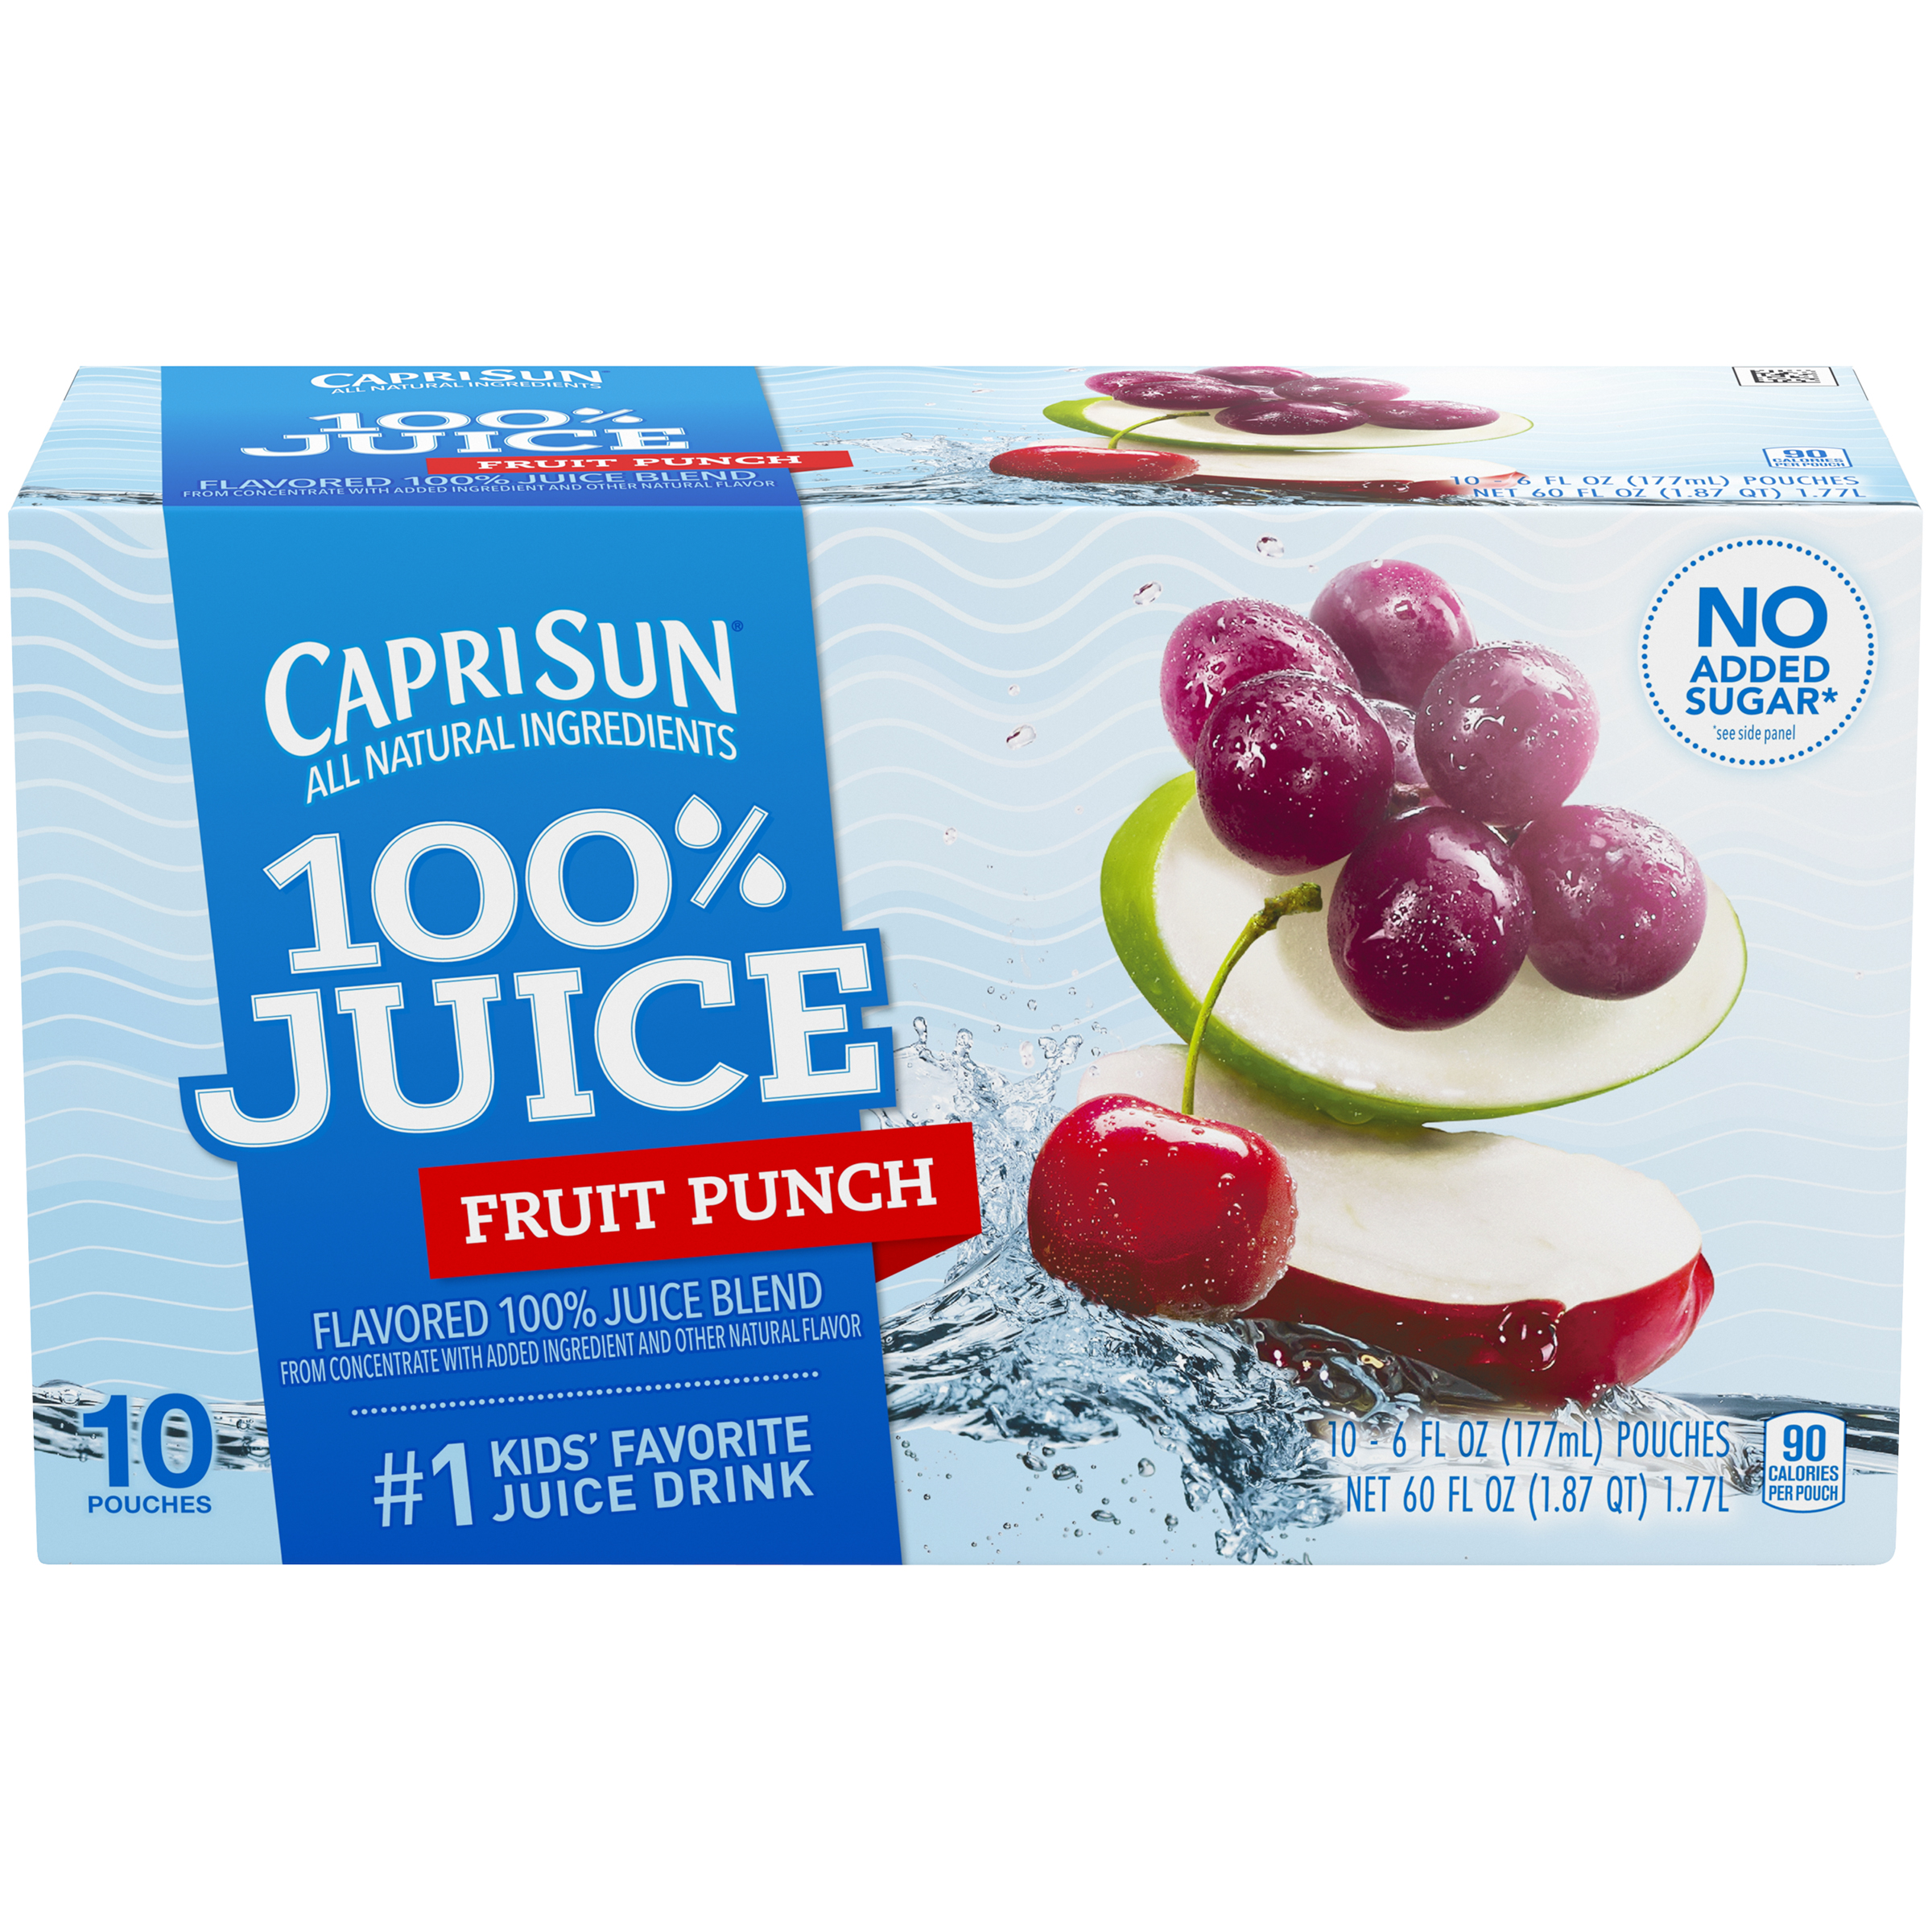 Capri Sun 100% Juice Fruit Punch - 10 CT Food Product Image